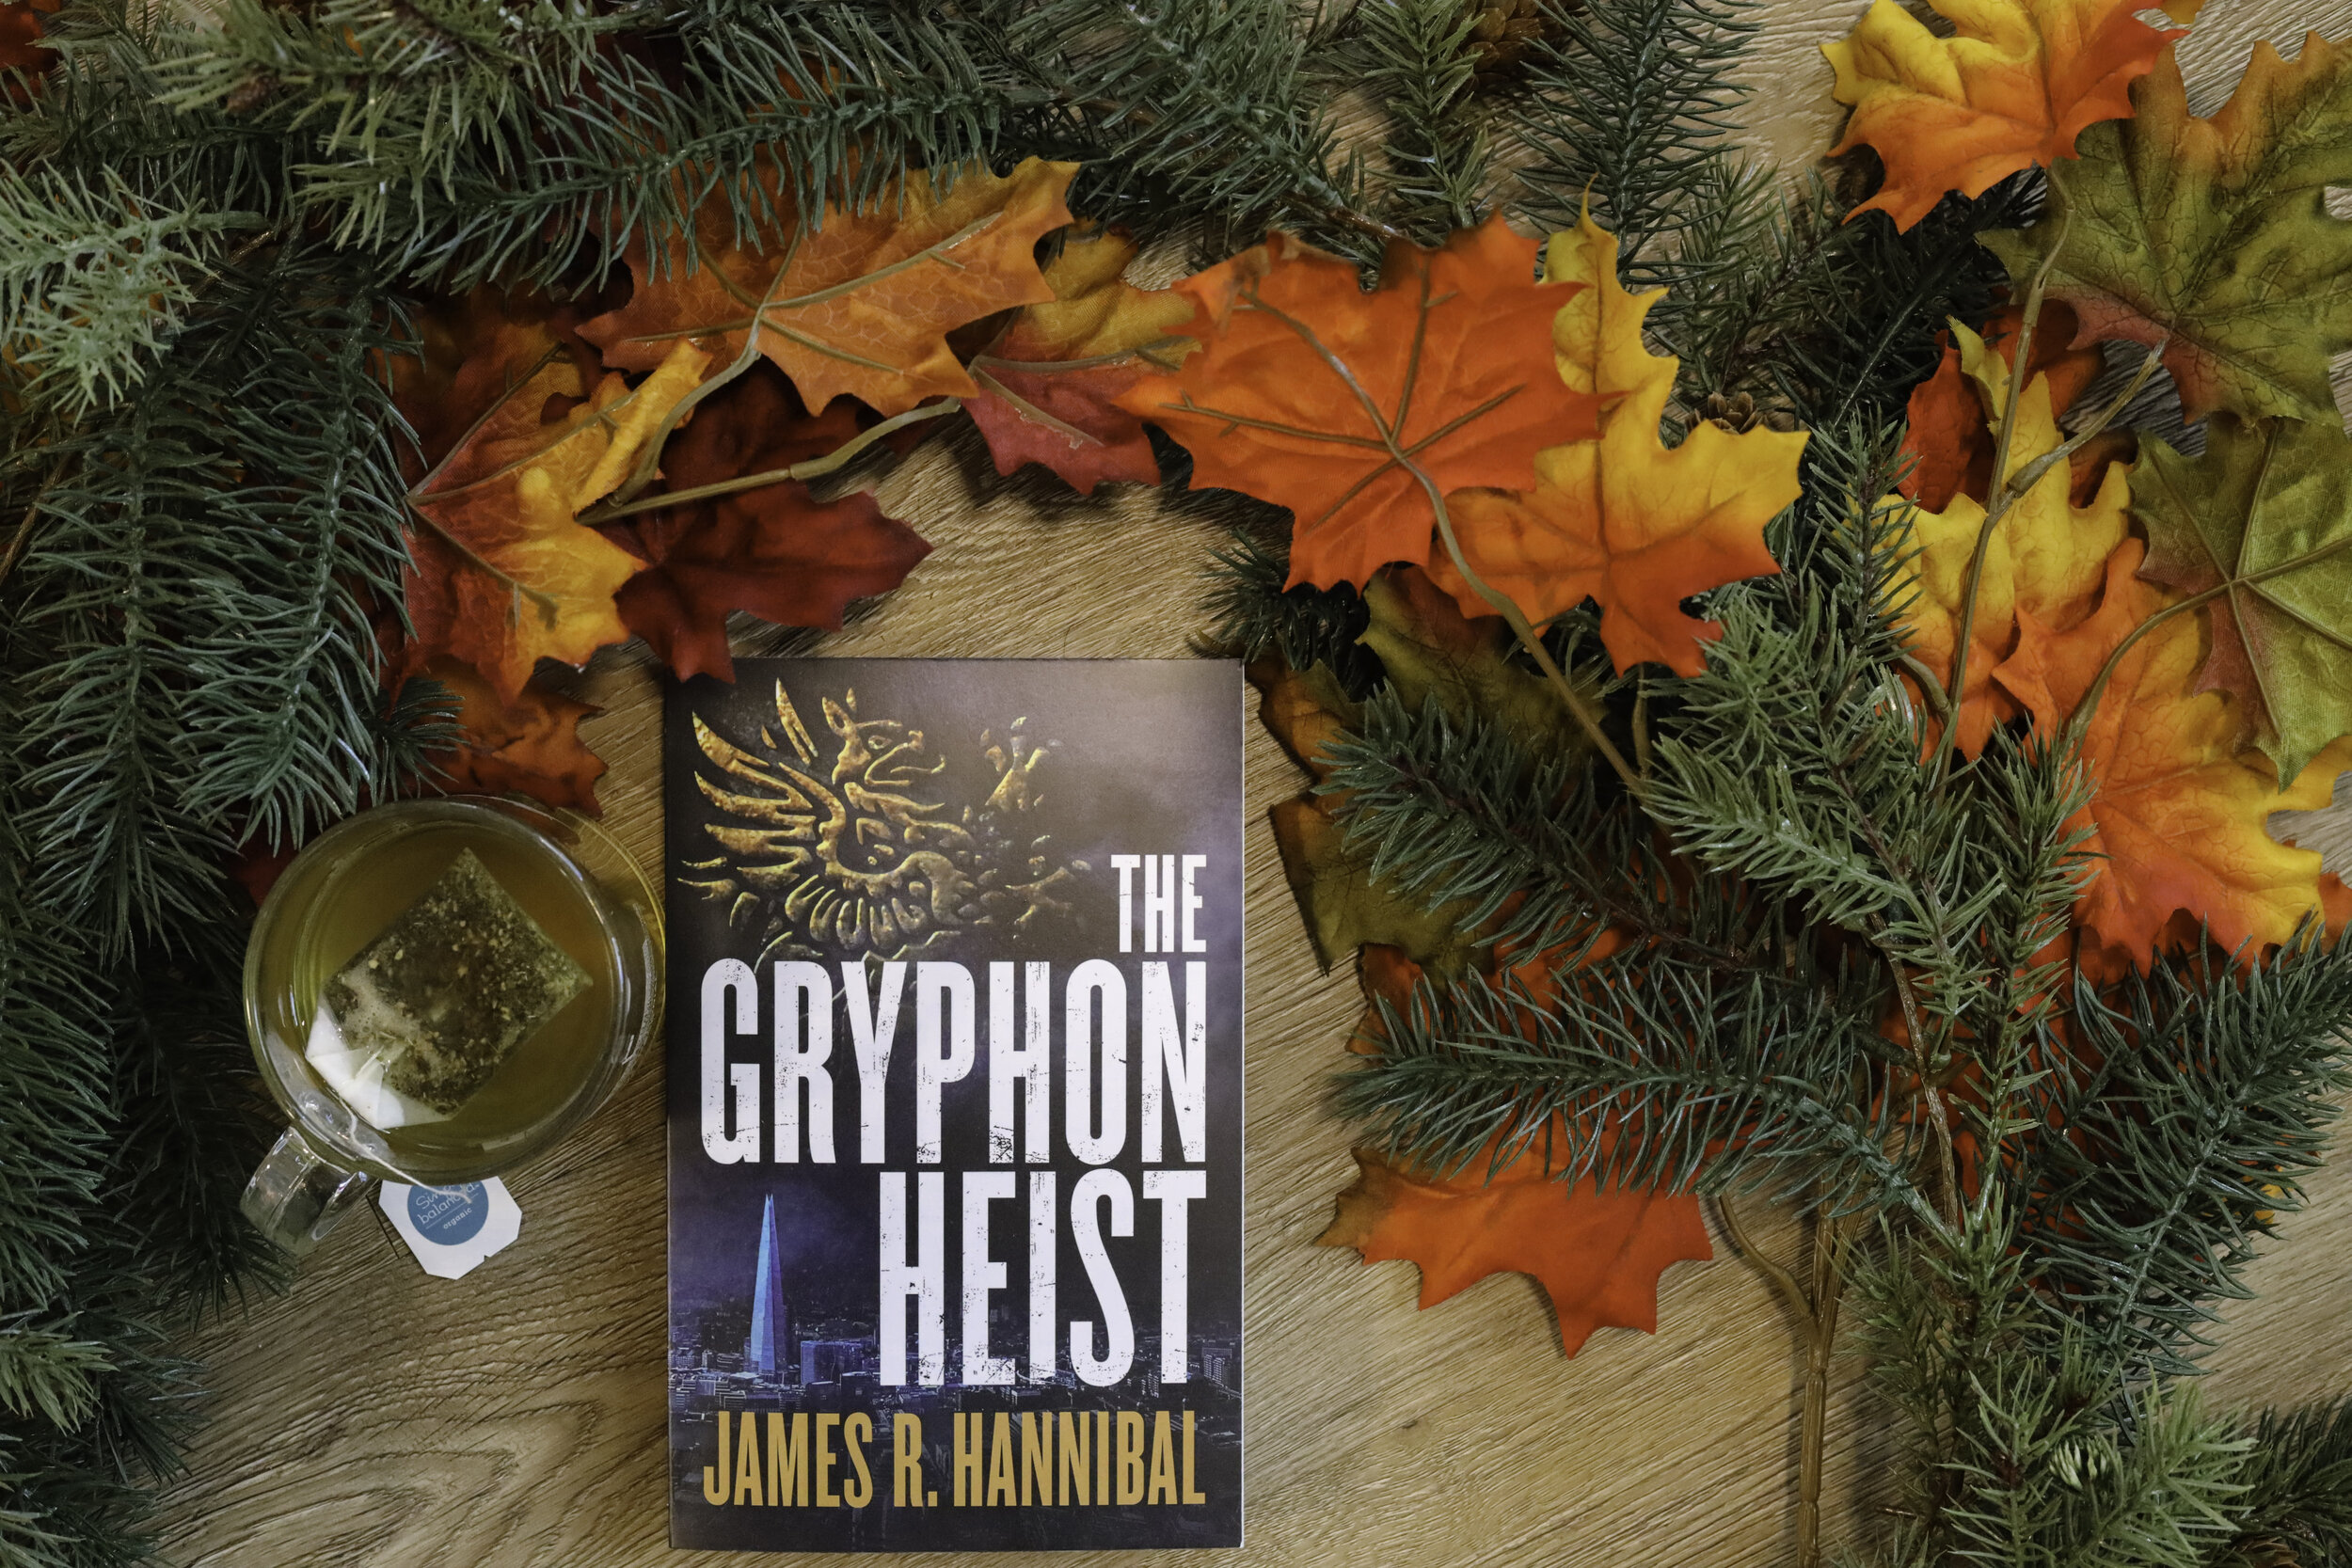 the gryphon heist james r hannibal book review